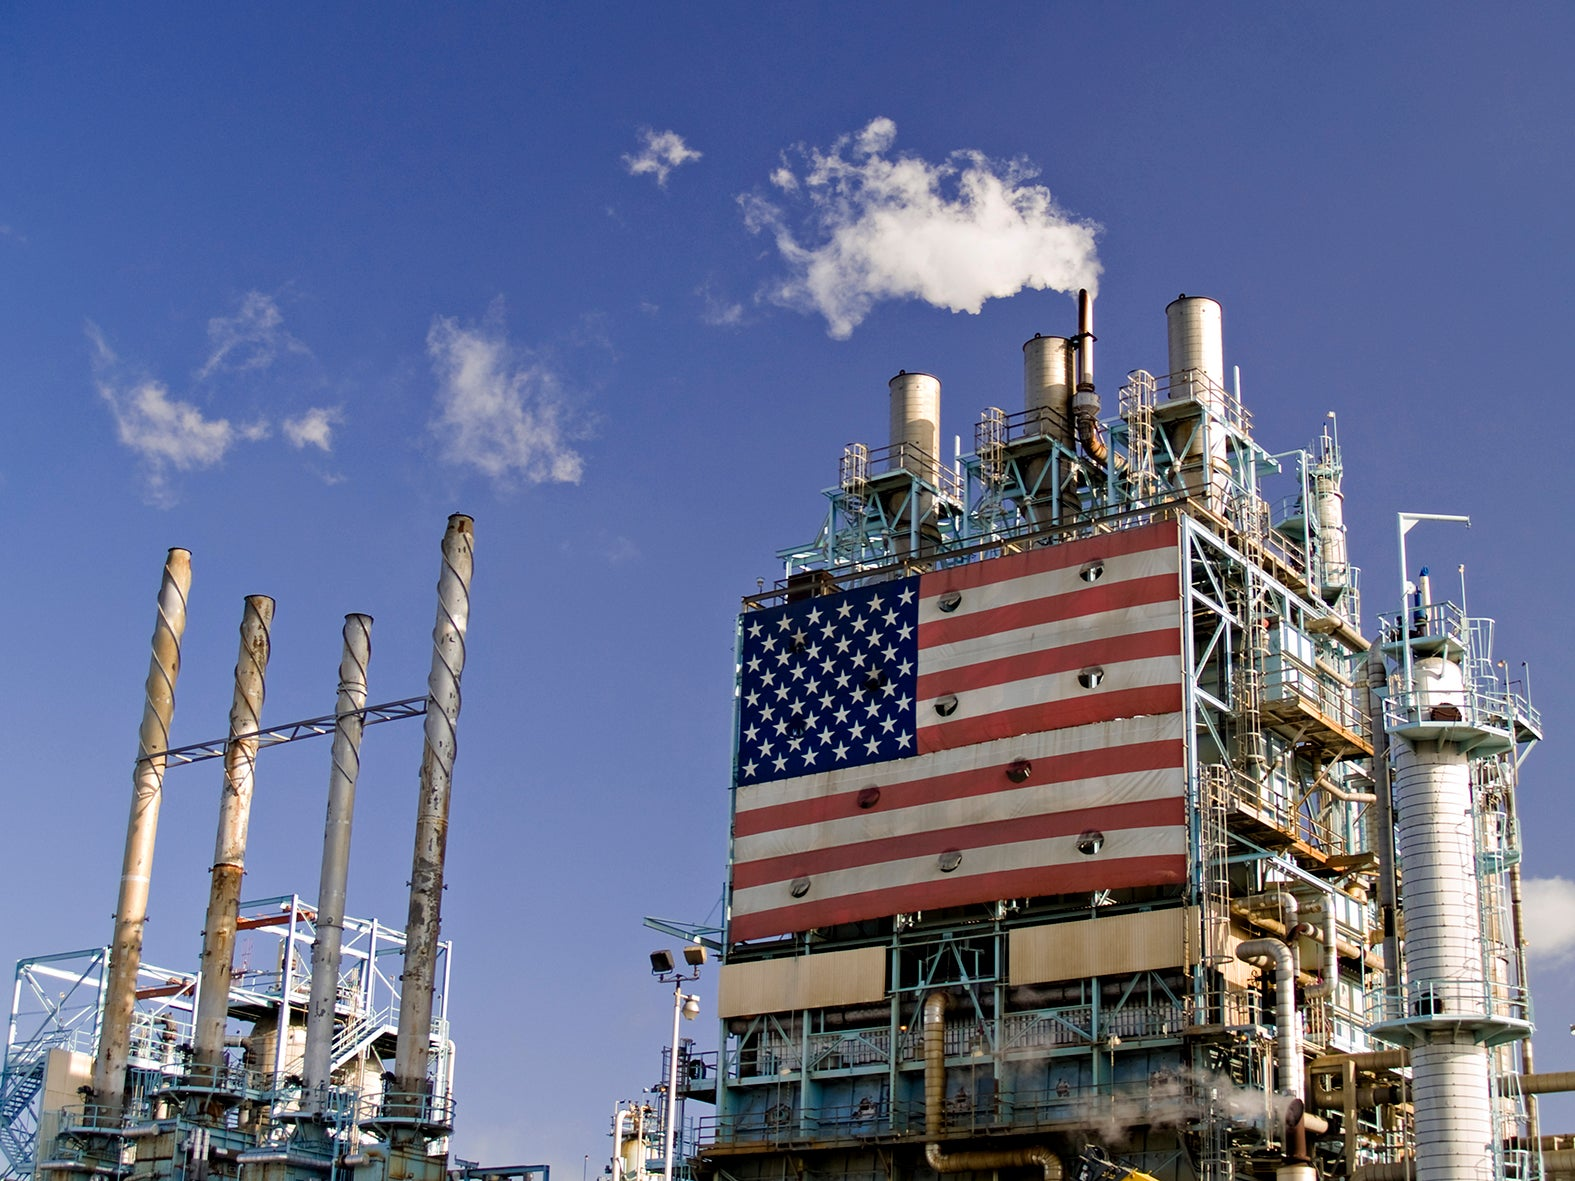 The US still produces far higher per capita emissions than China